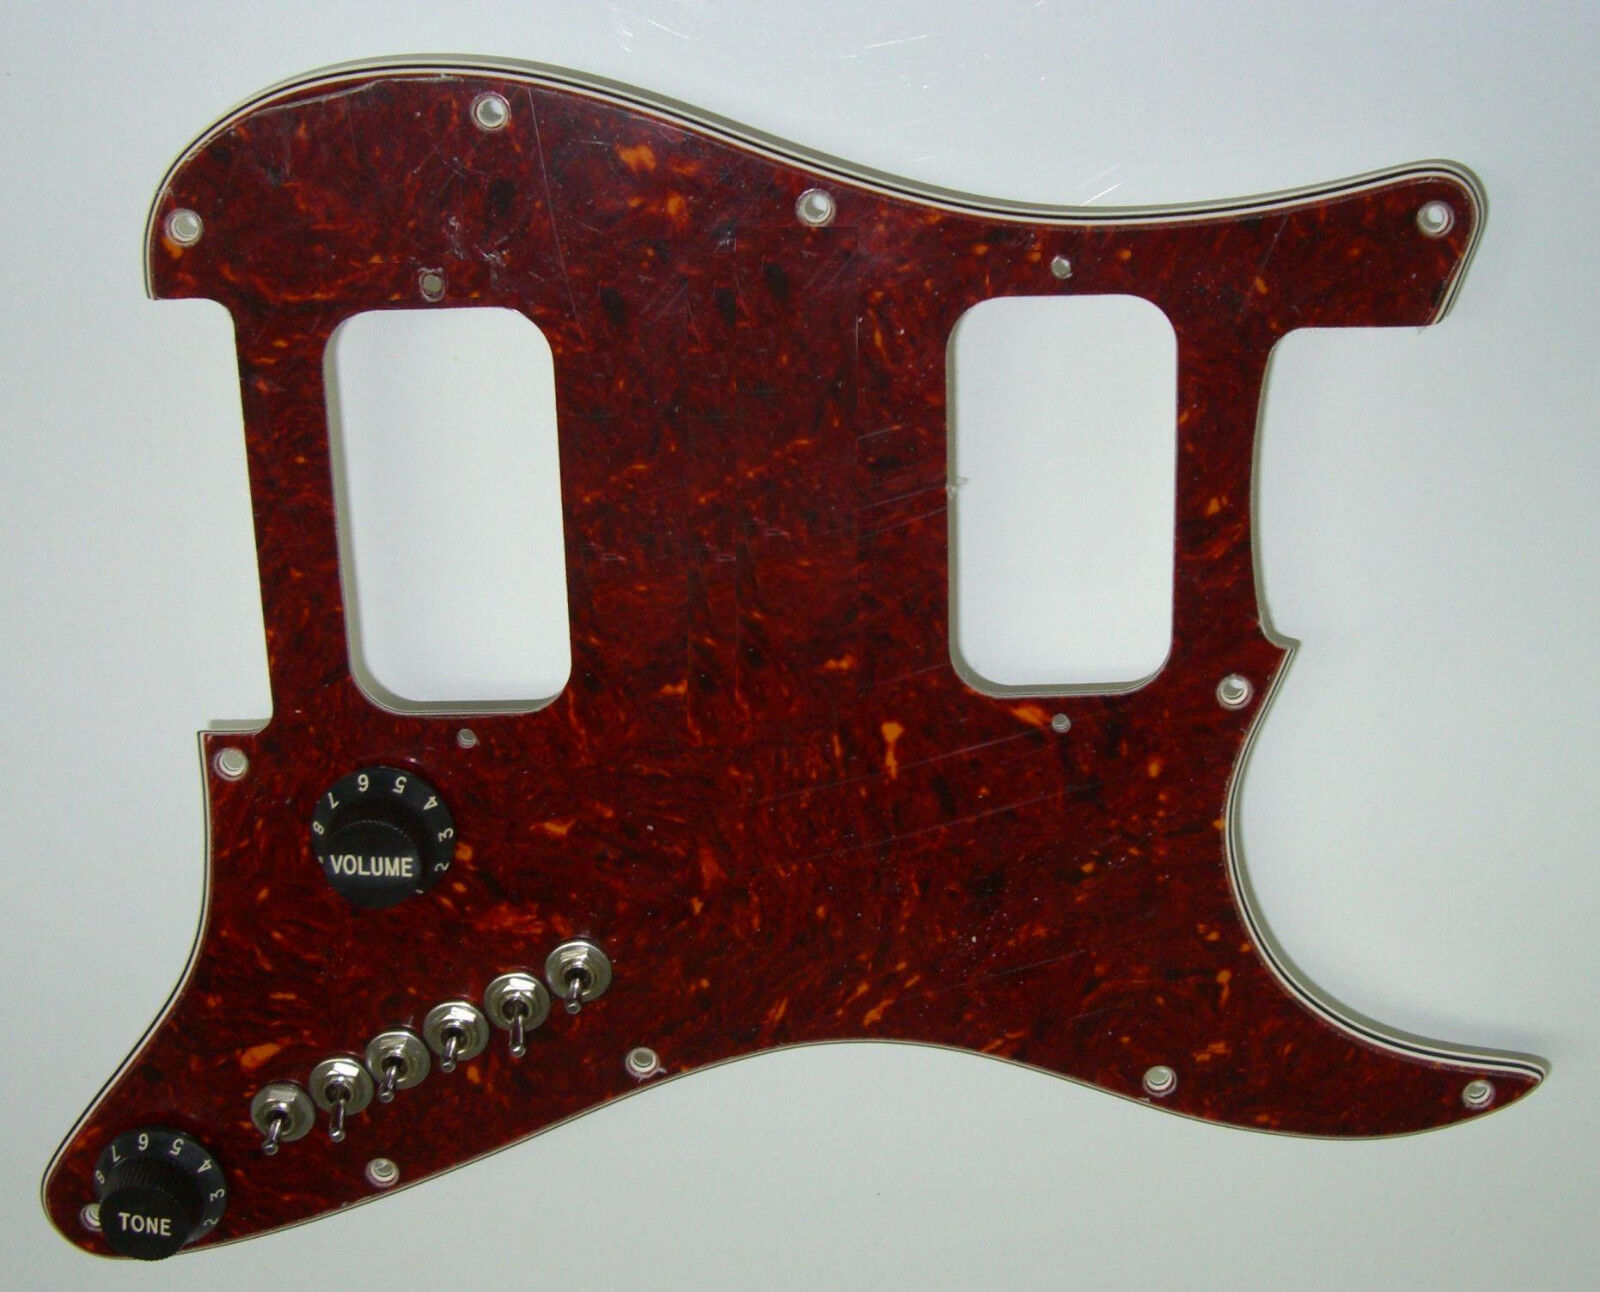 Upgrade Fits HH Stratocaster Strat Has 68 Pickup Tones + Treble Bleed